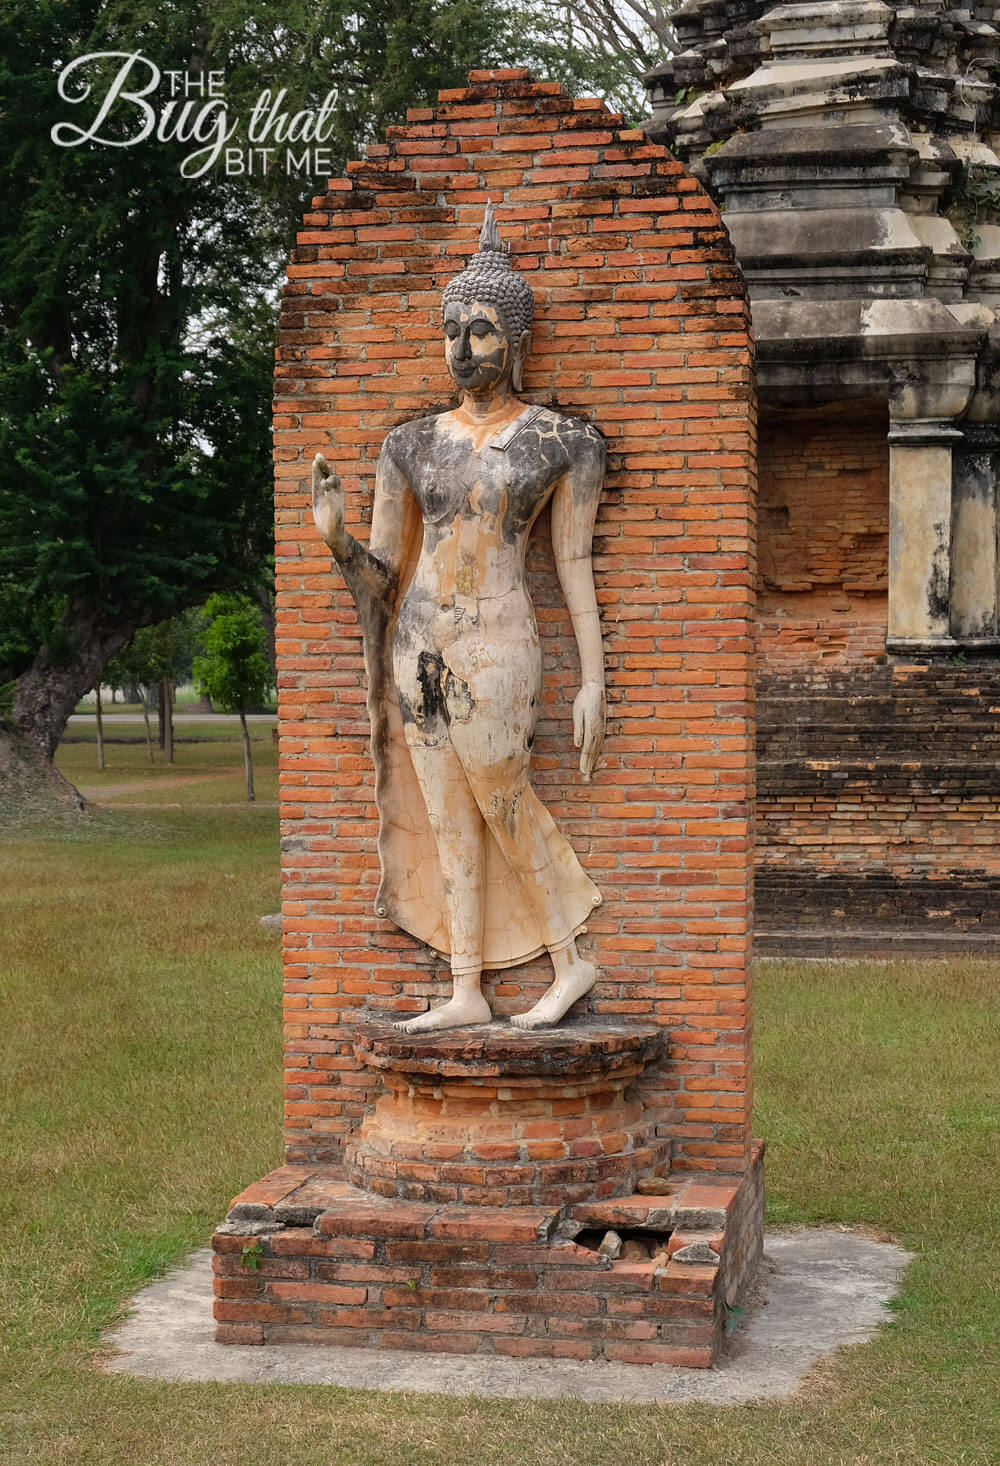 The Ruins of Sukhothai, Thailand - The Bug That Bit Me